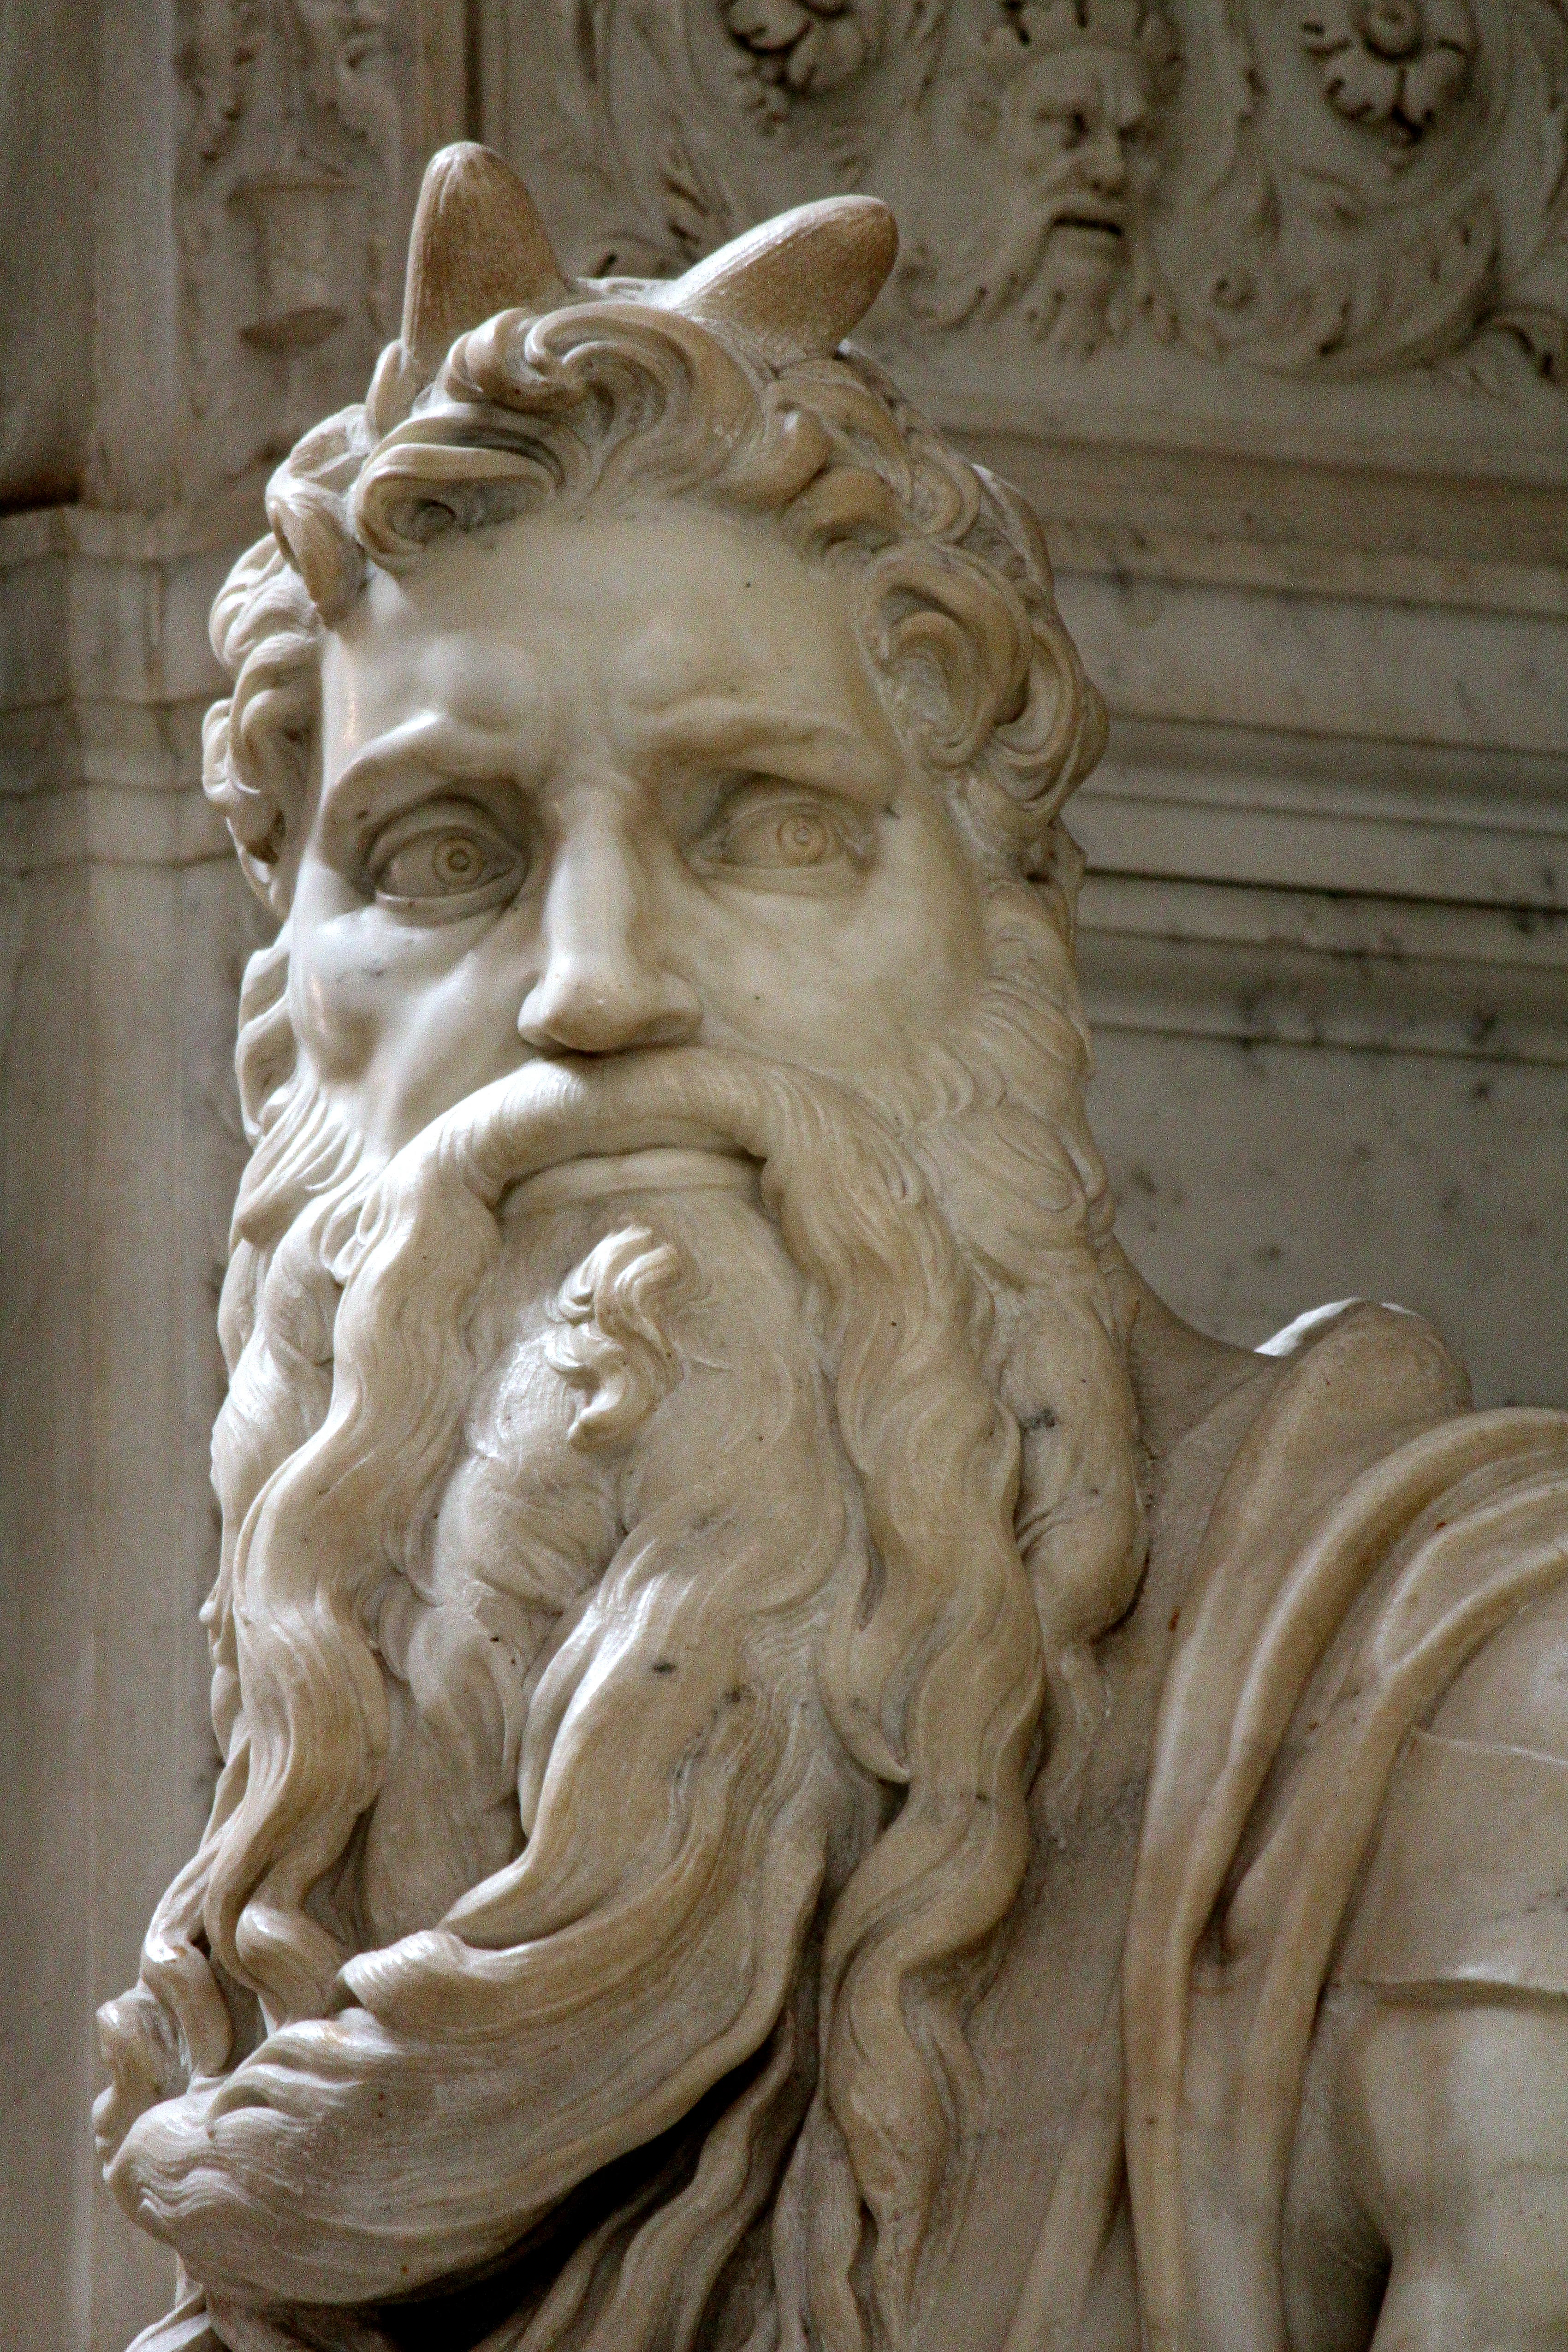 Michelangelo images - Michelangelo S Moses Detail With Horns